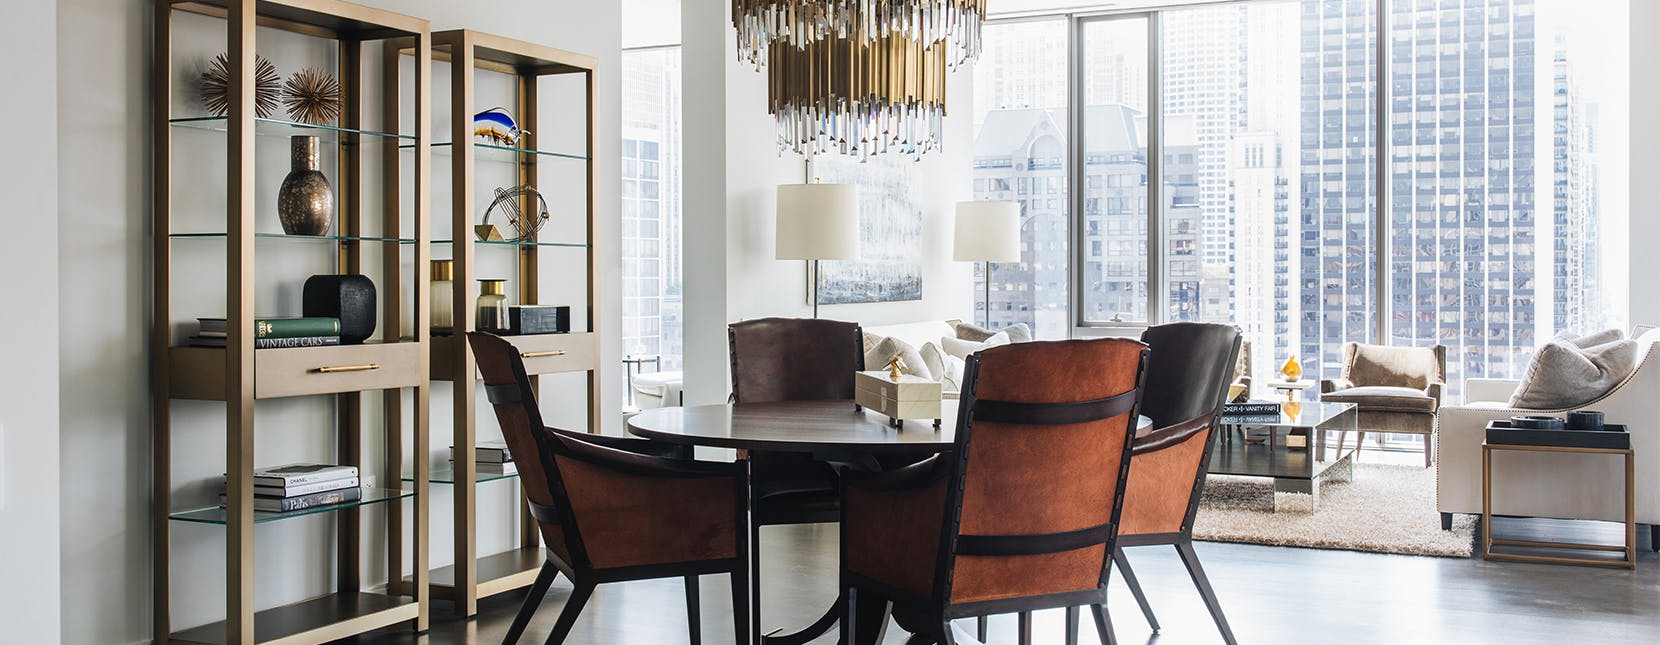 Furniture Companies in Abuja - Find The Top One to Choose Amazing And Contemporary Collection